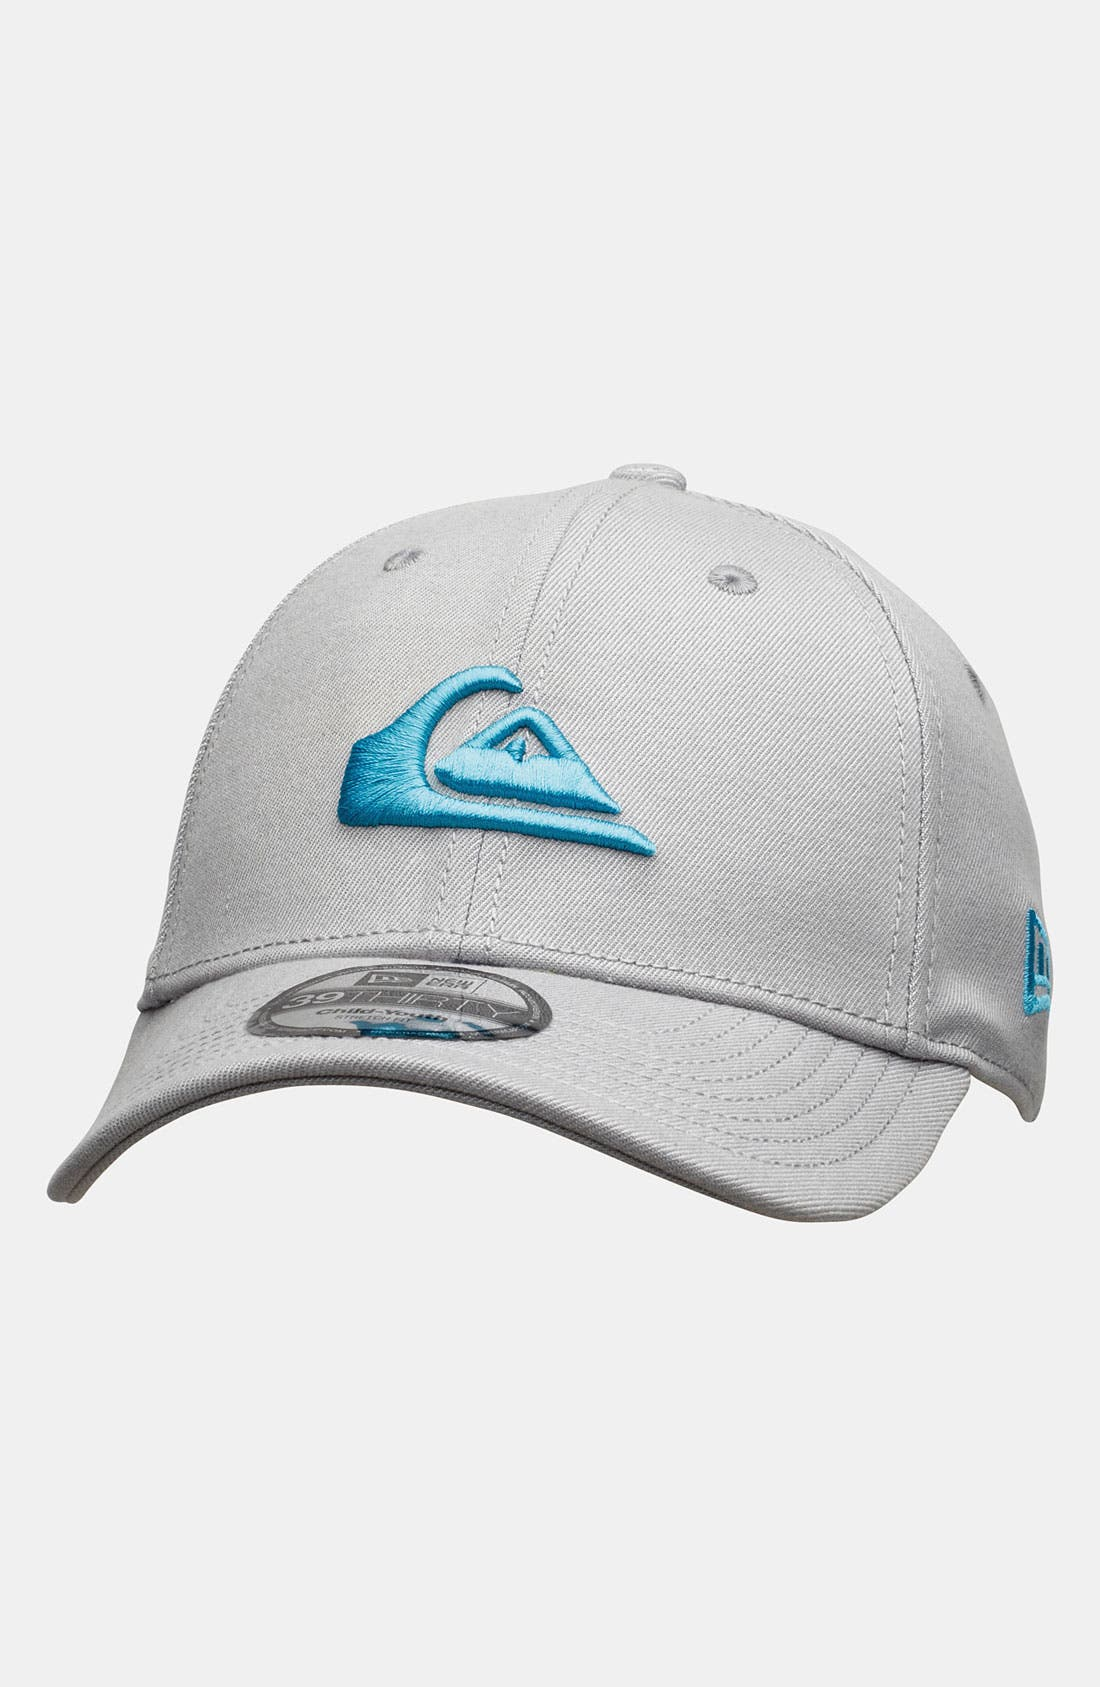 Alternate Image 1 Selected - Quiksilver 'Ruckis' Cap (Toddler)